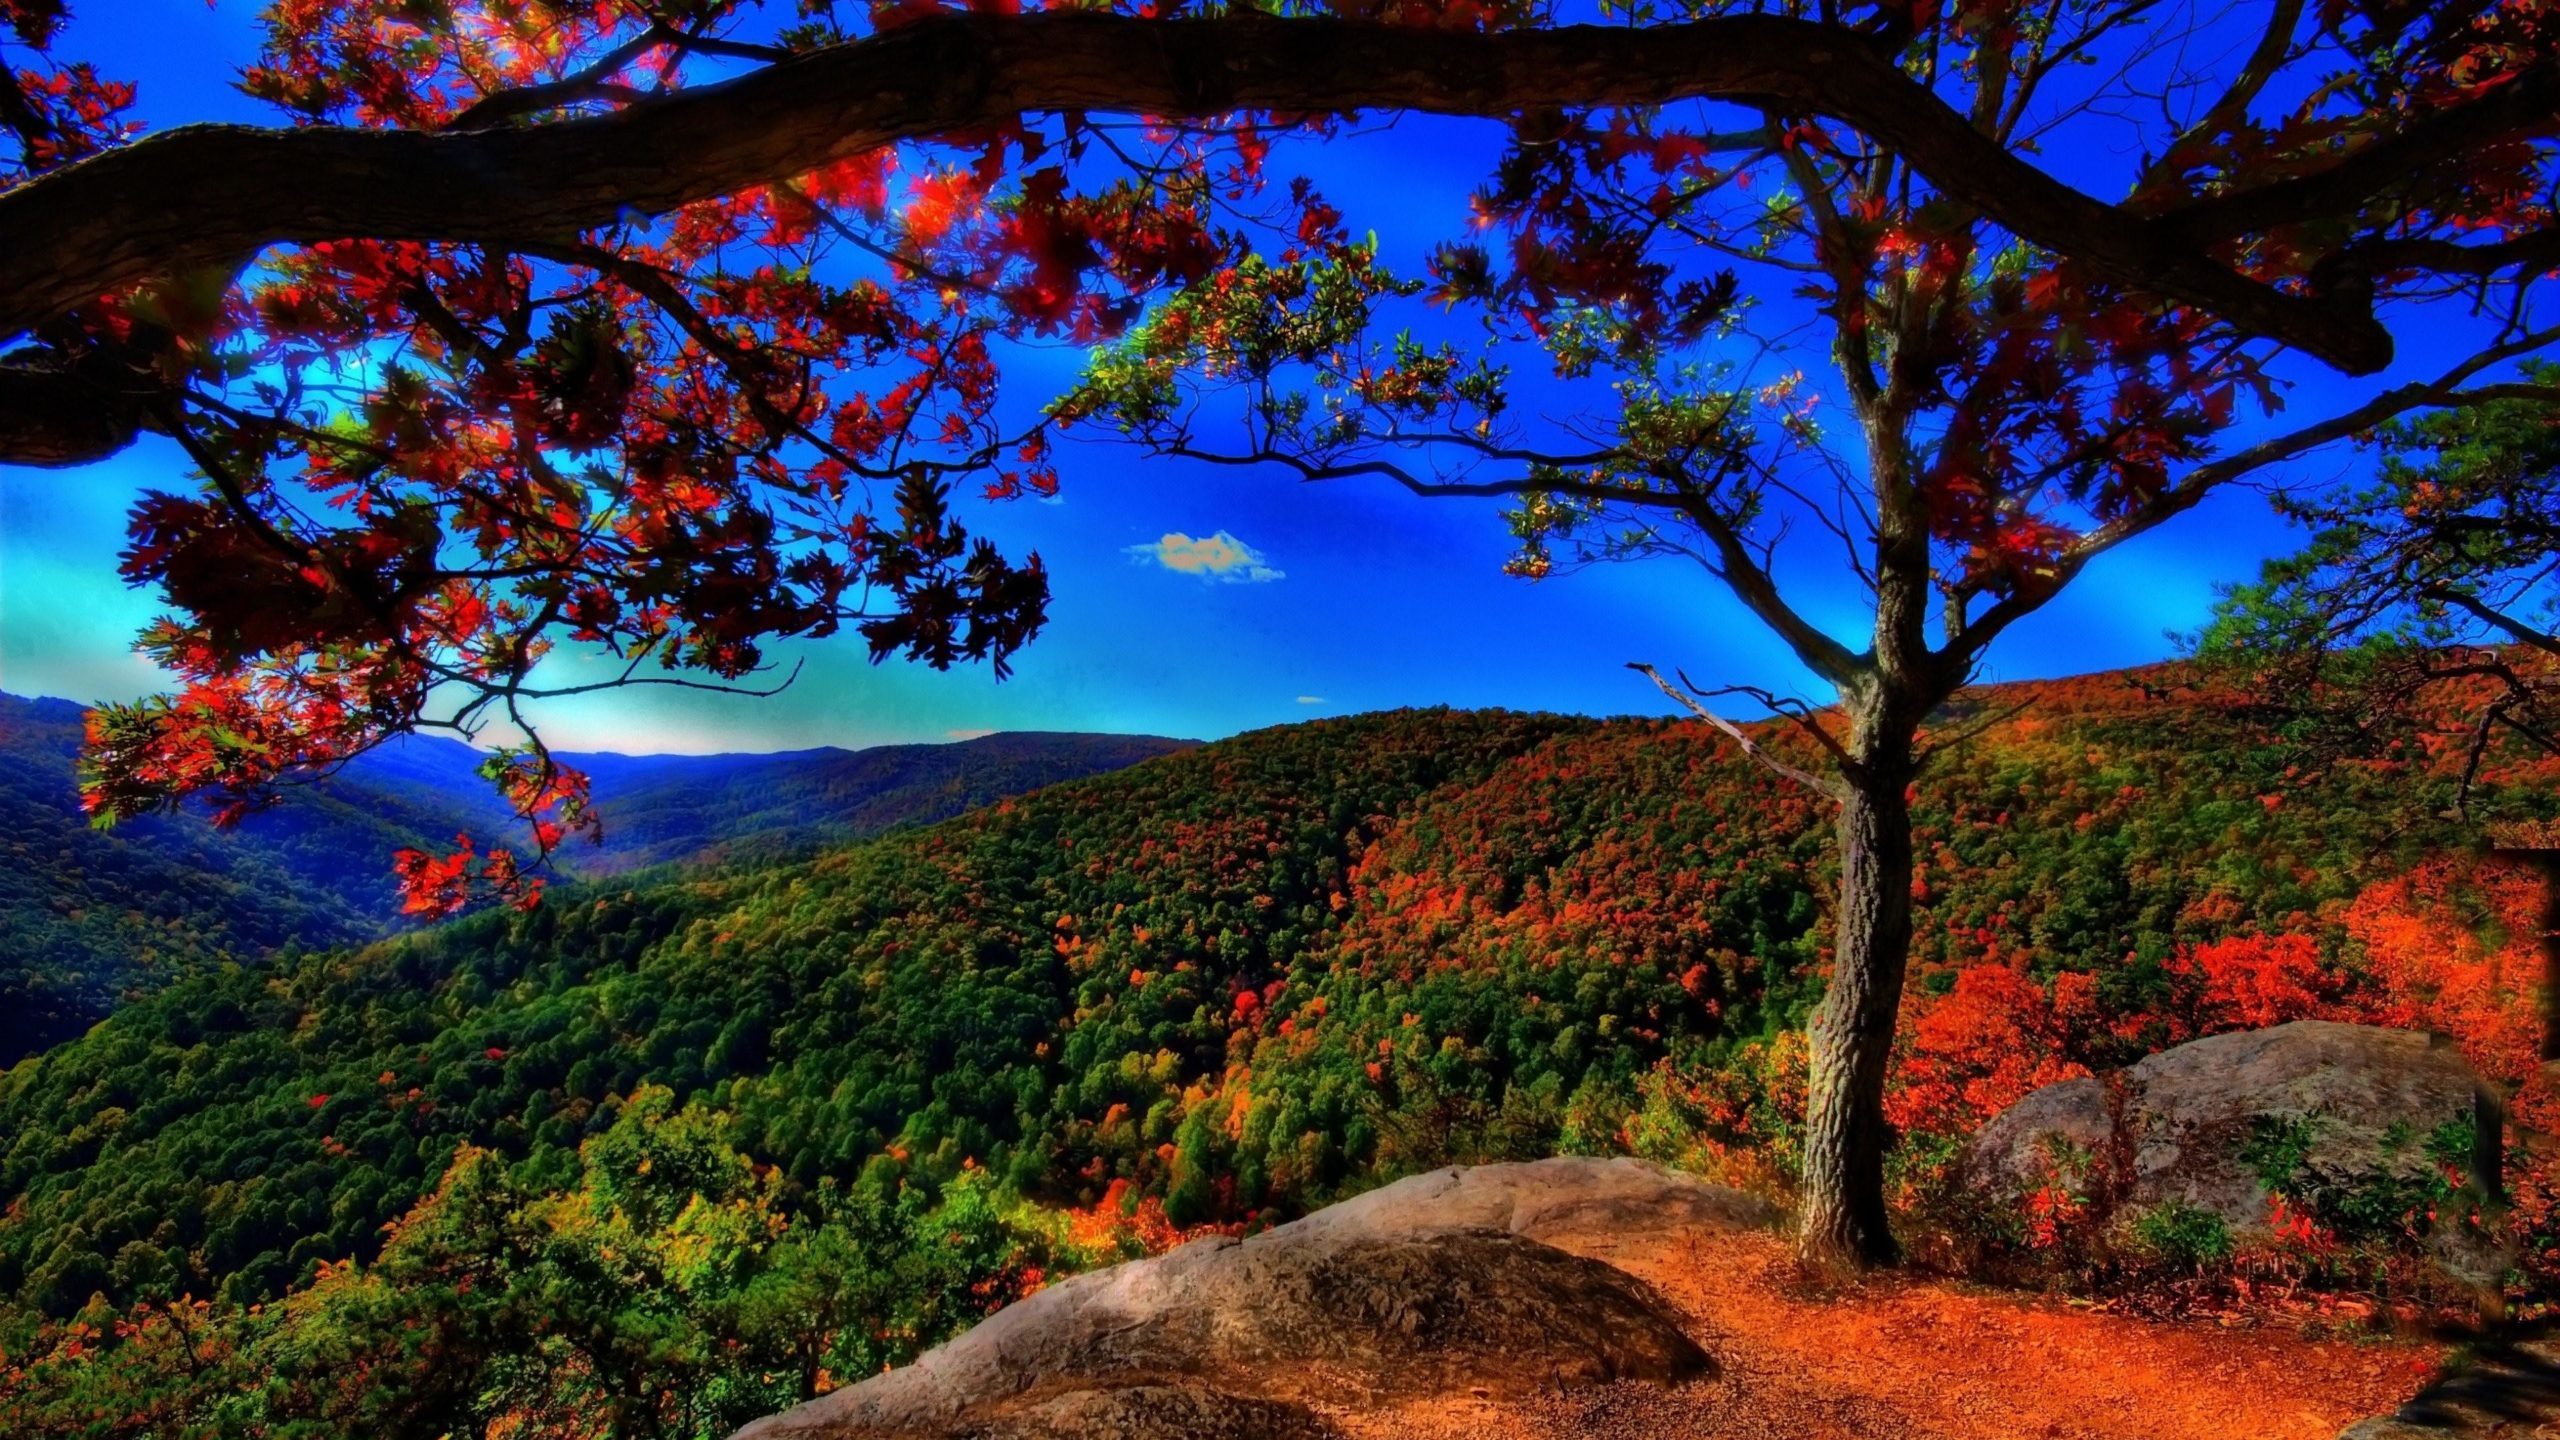 fall leaves background images